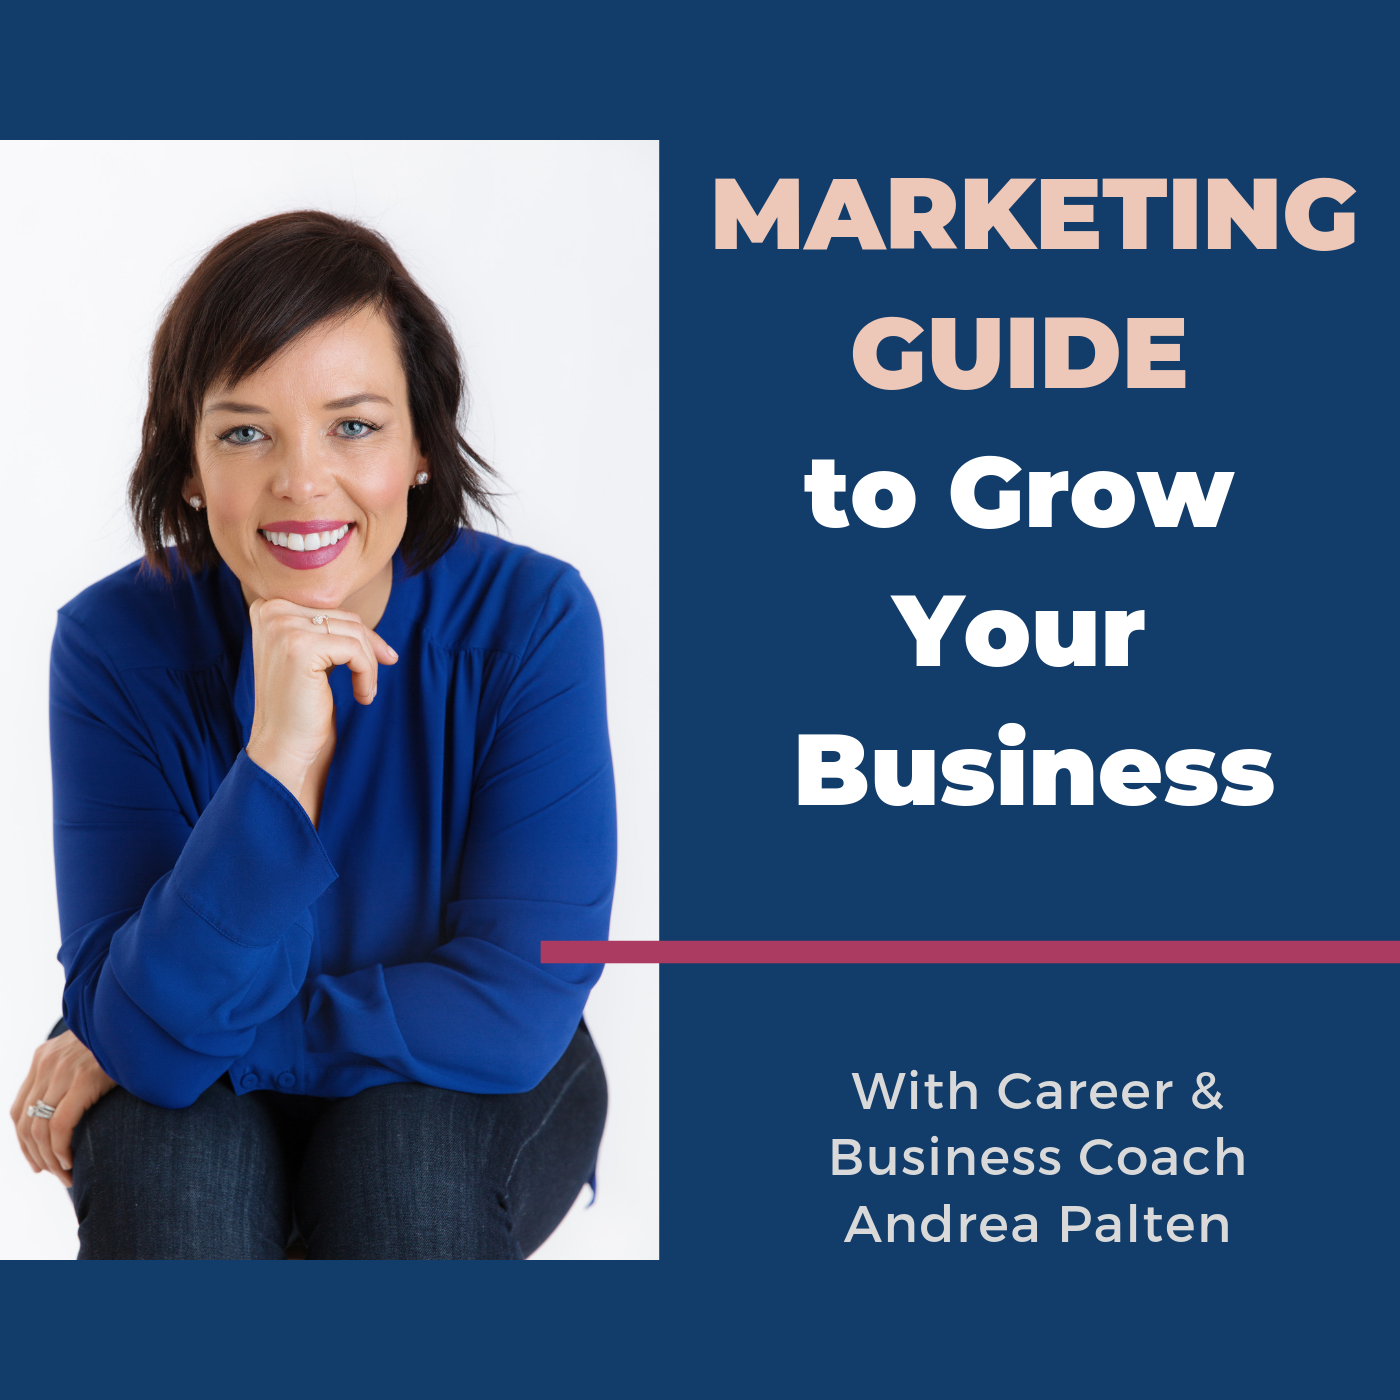 Marketing Guide to Grow Your Business | Listen Free on Castbox